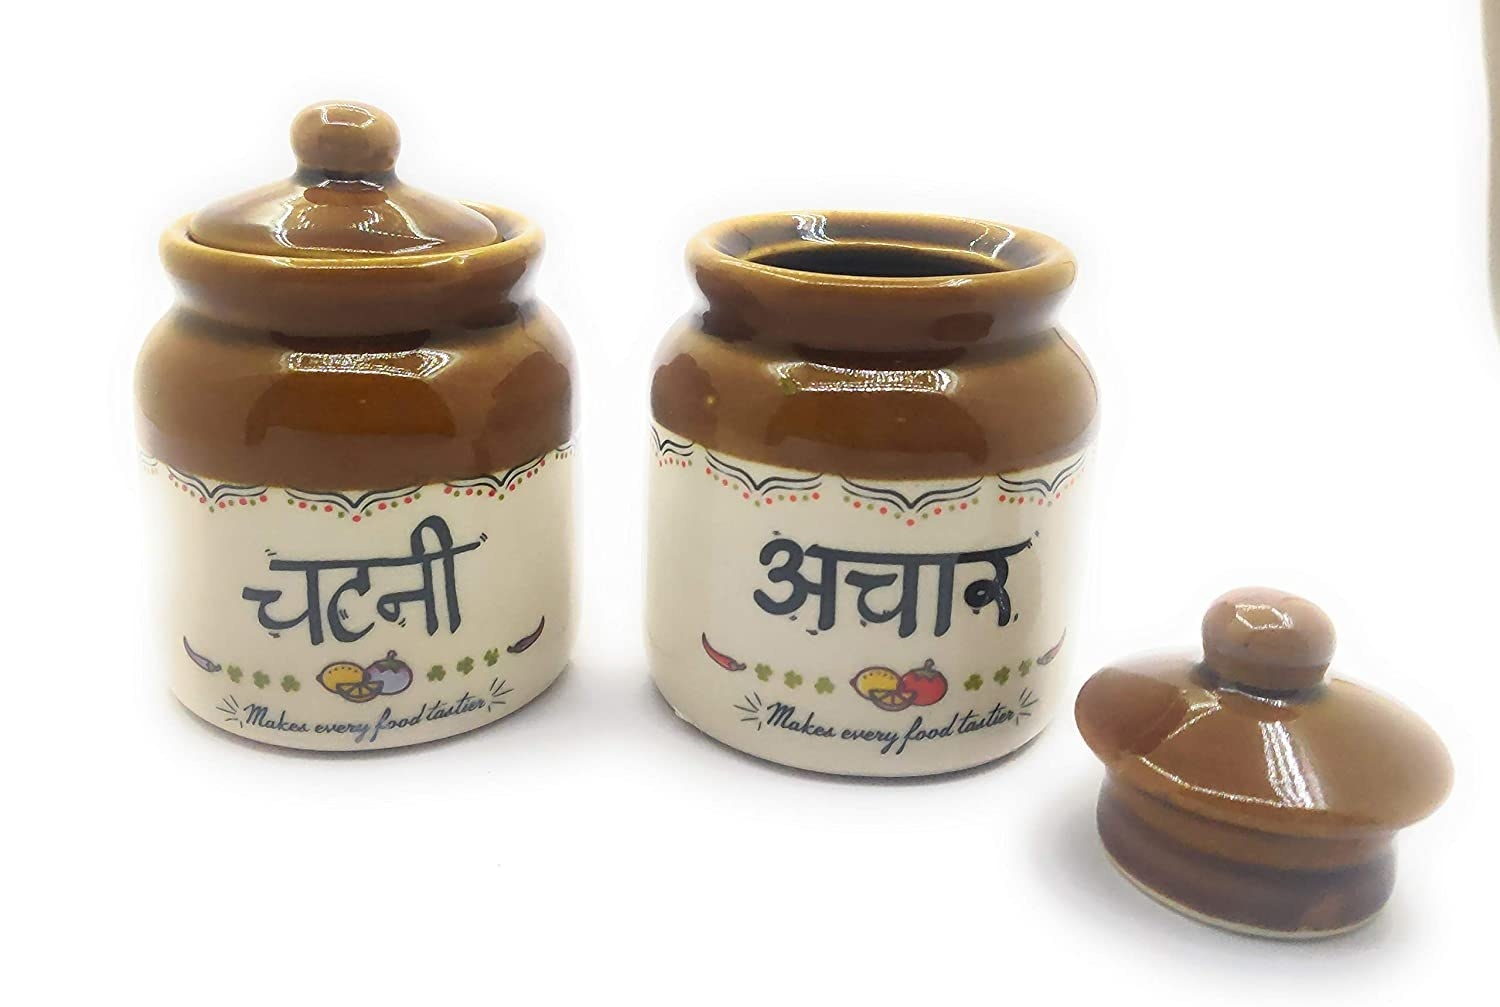 2 traditional achaar and chutney jars with 'chutney' and 'achaar' written on each in Hindi.